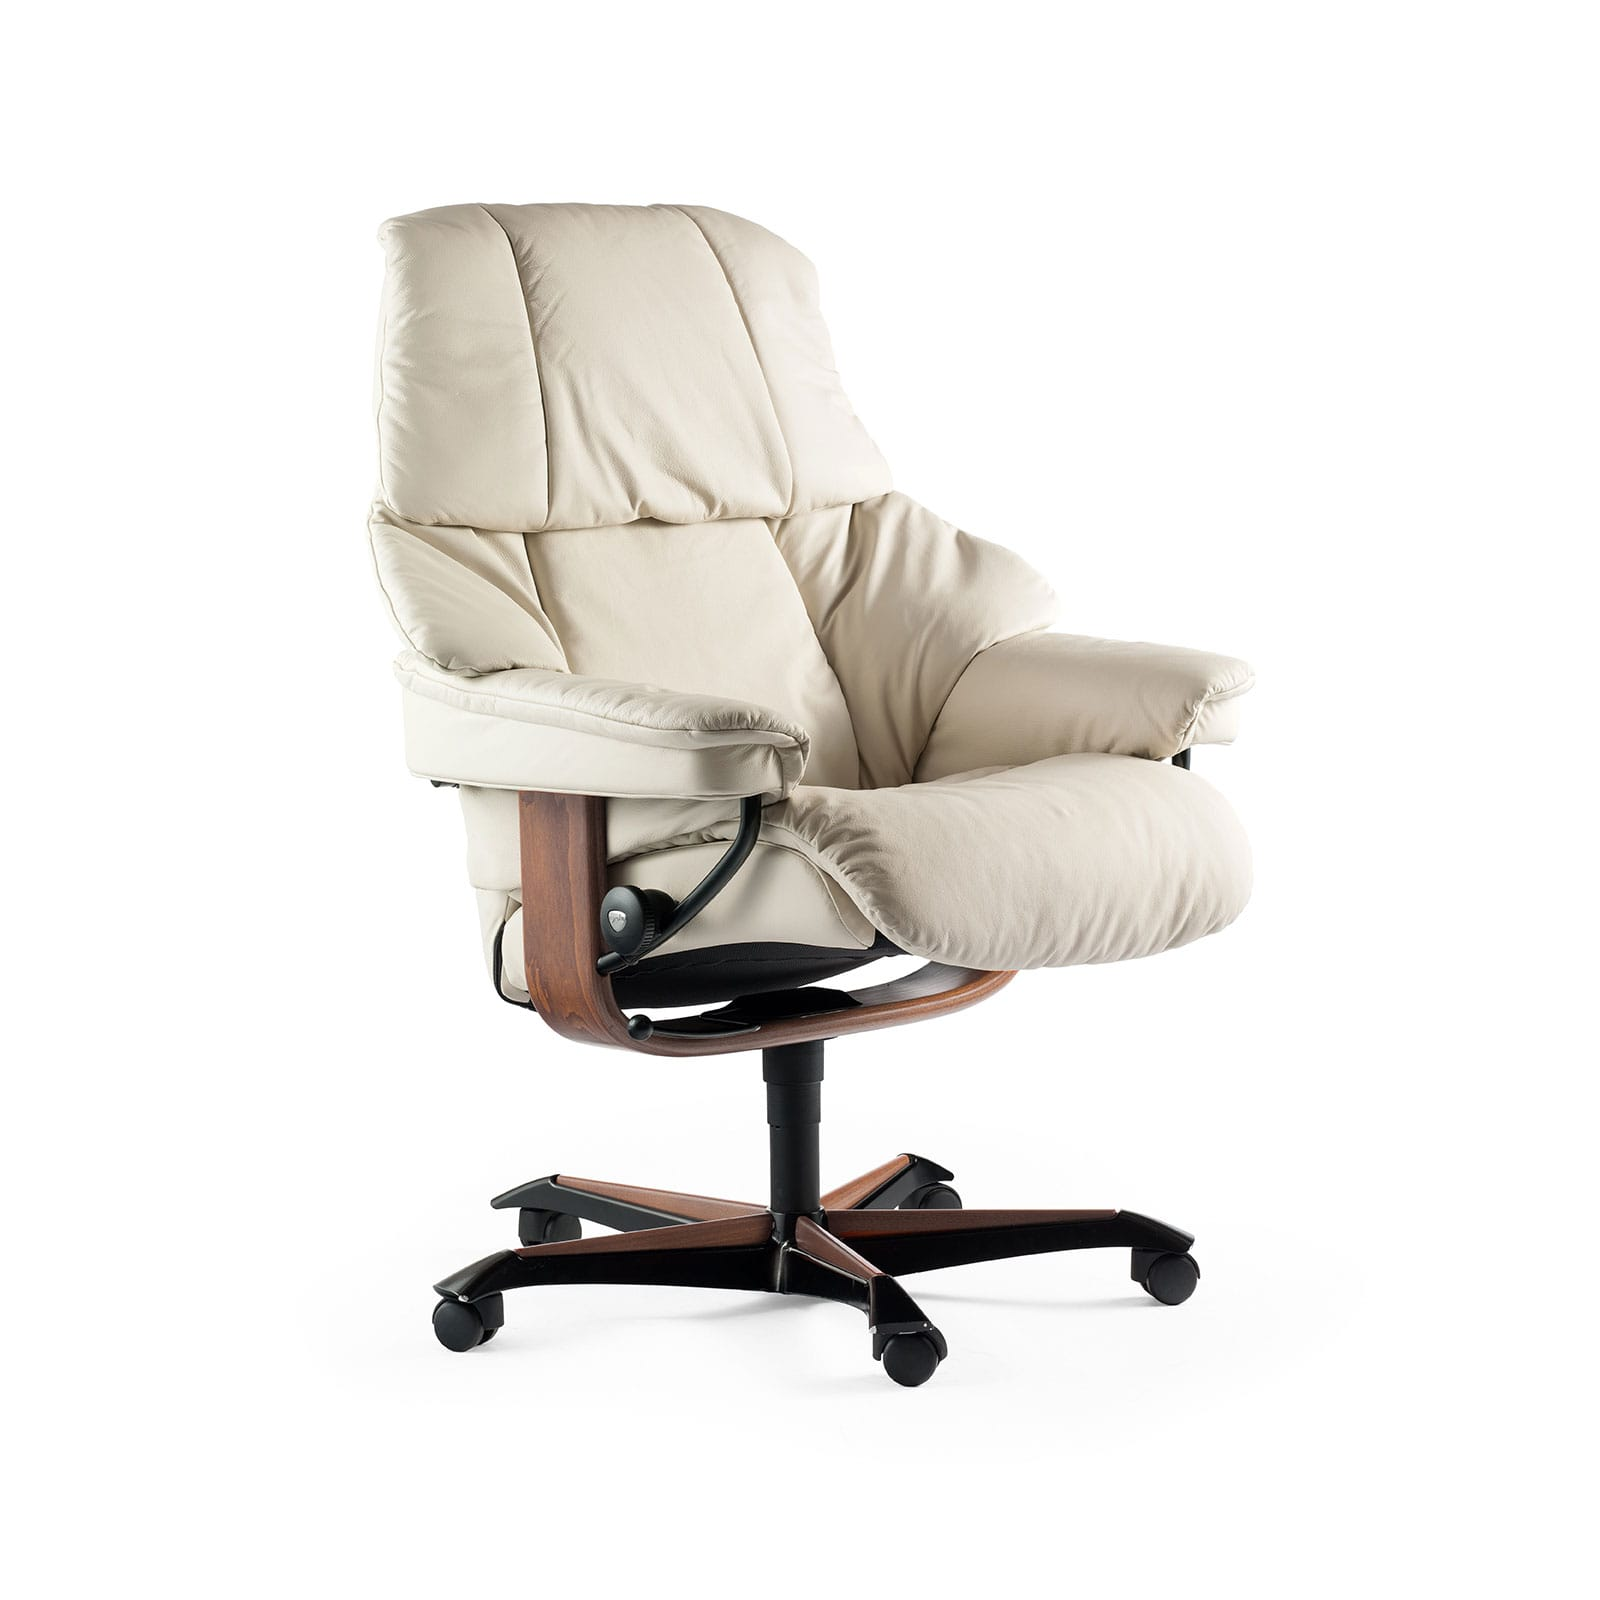 Stressless Bürostuhl Stressless Reno Home Office M Paloma Light Grey Gestell